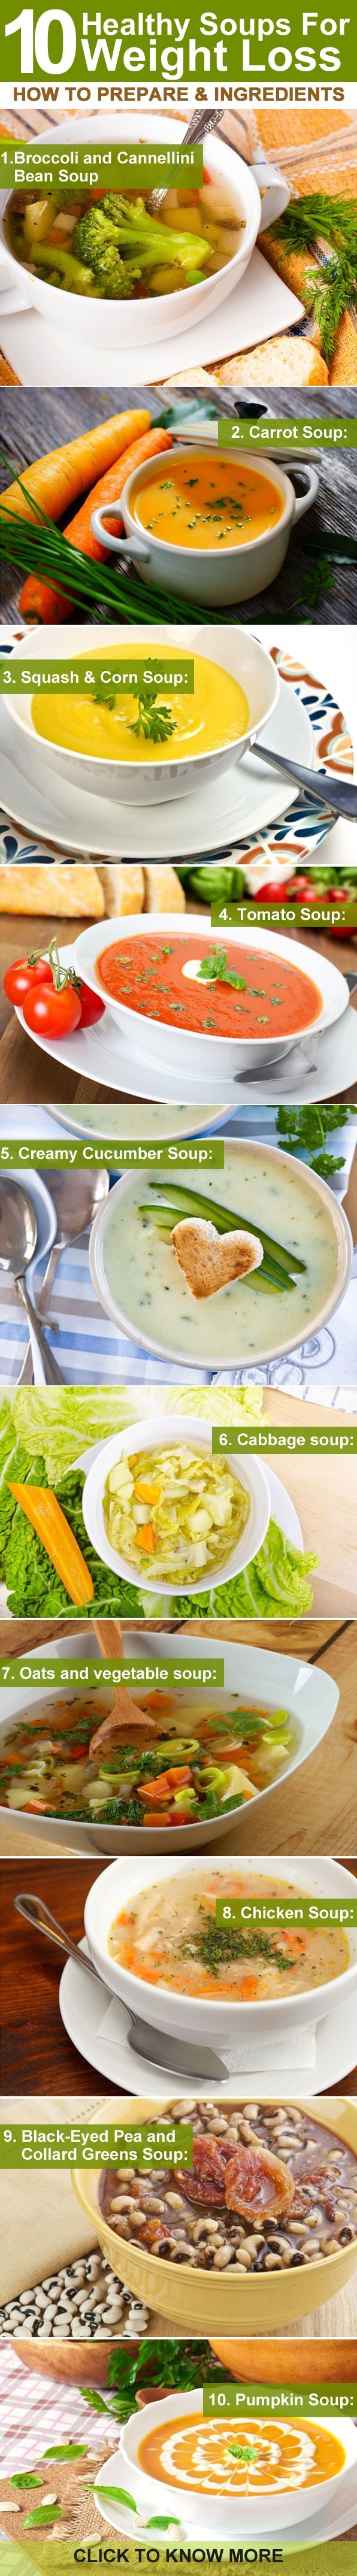 (healthbeckon.com) Soups, especially low calorie vegetable soups are best options for weight loss. Learn the healthy recipes of soups for weight loss given for